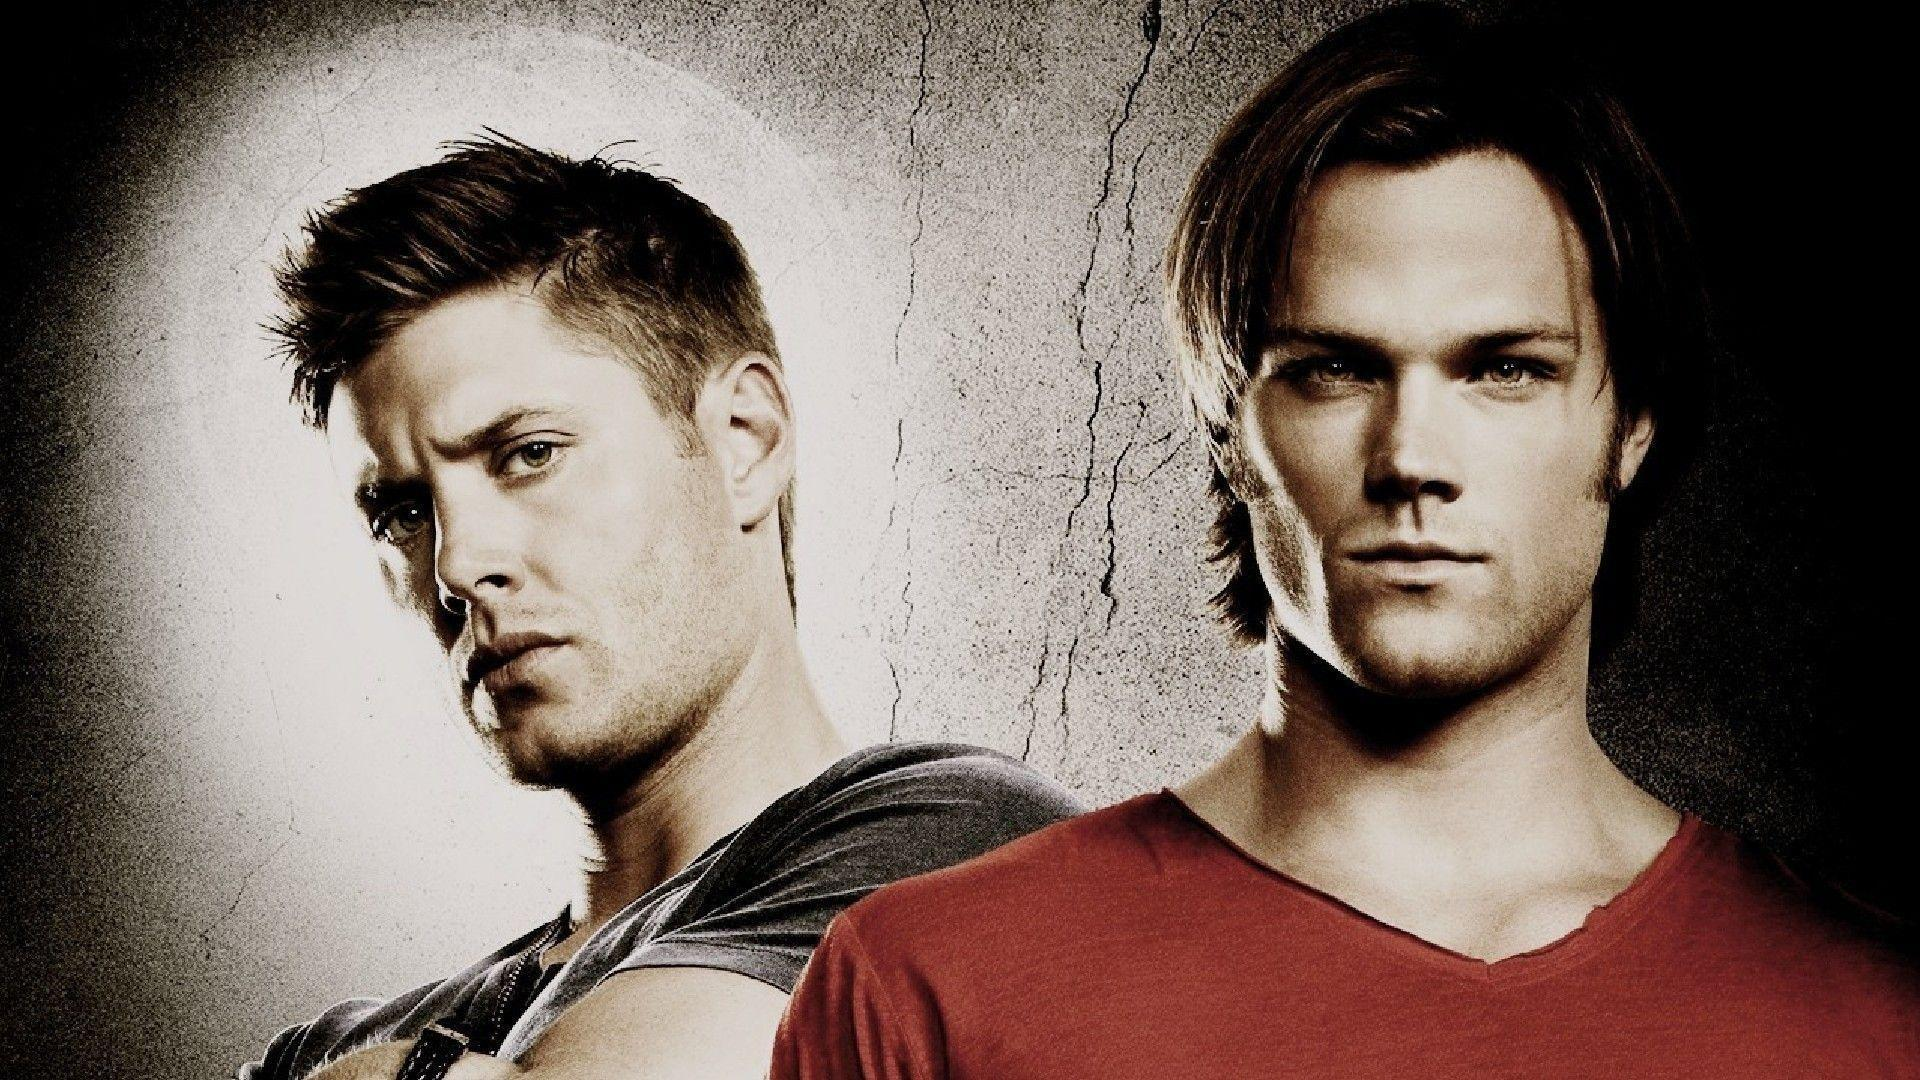 Supernatural wallpapers 2015 wallpaper cave supernatural wallpaper 3 supernatural wallpaper hd free wallpapers voltagebd Image collections